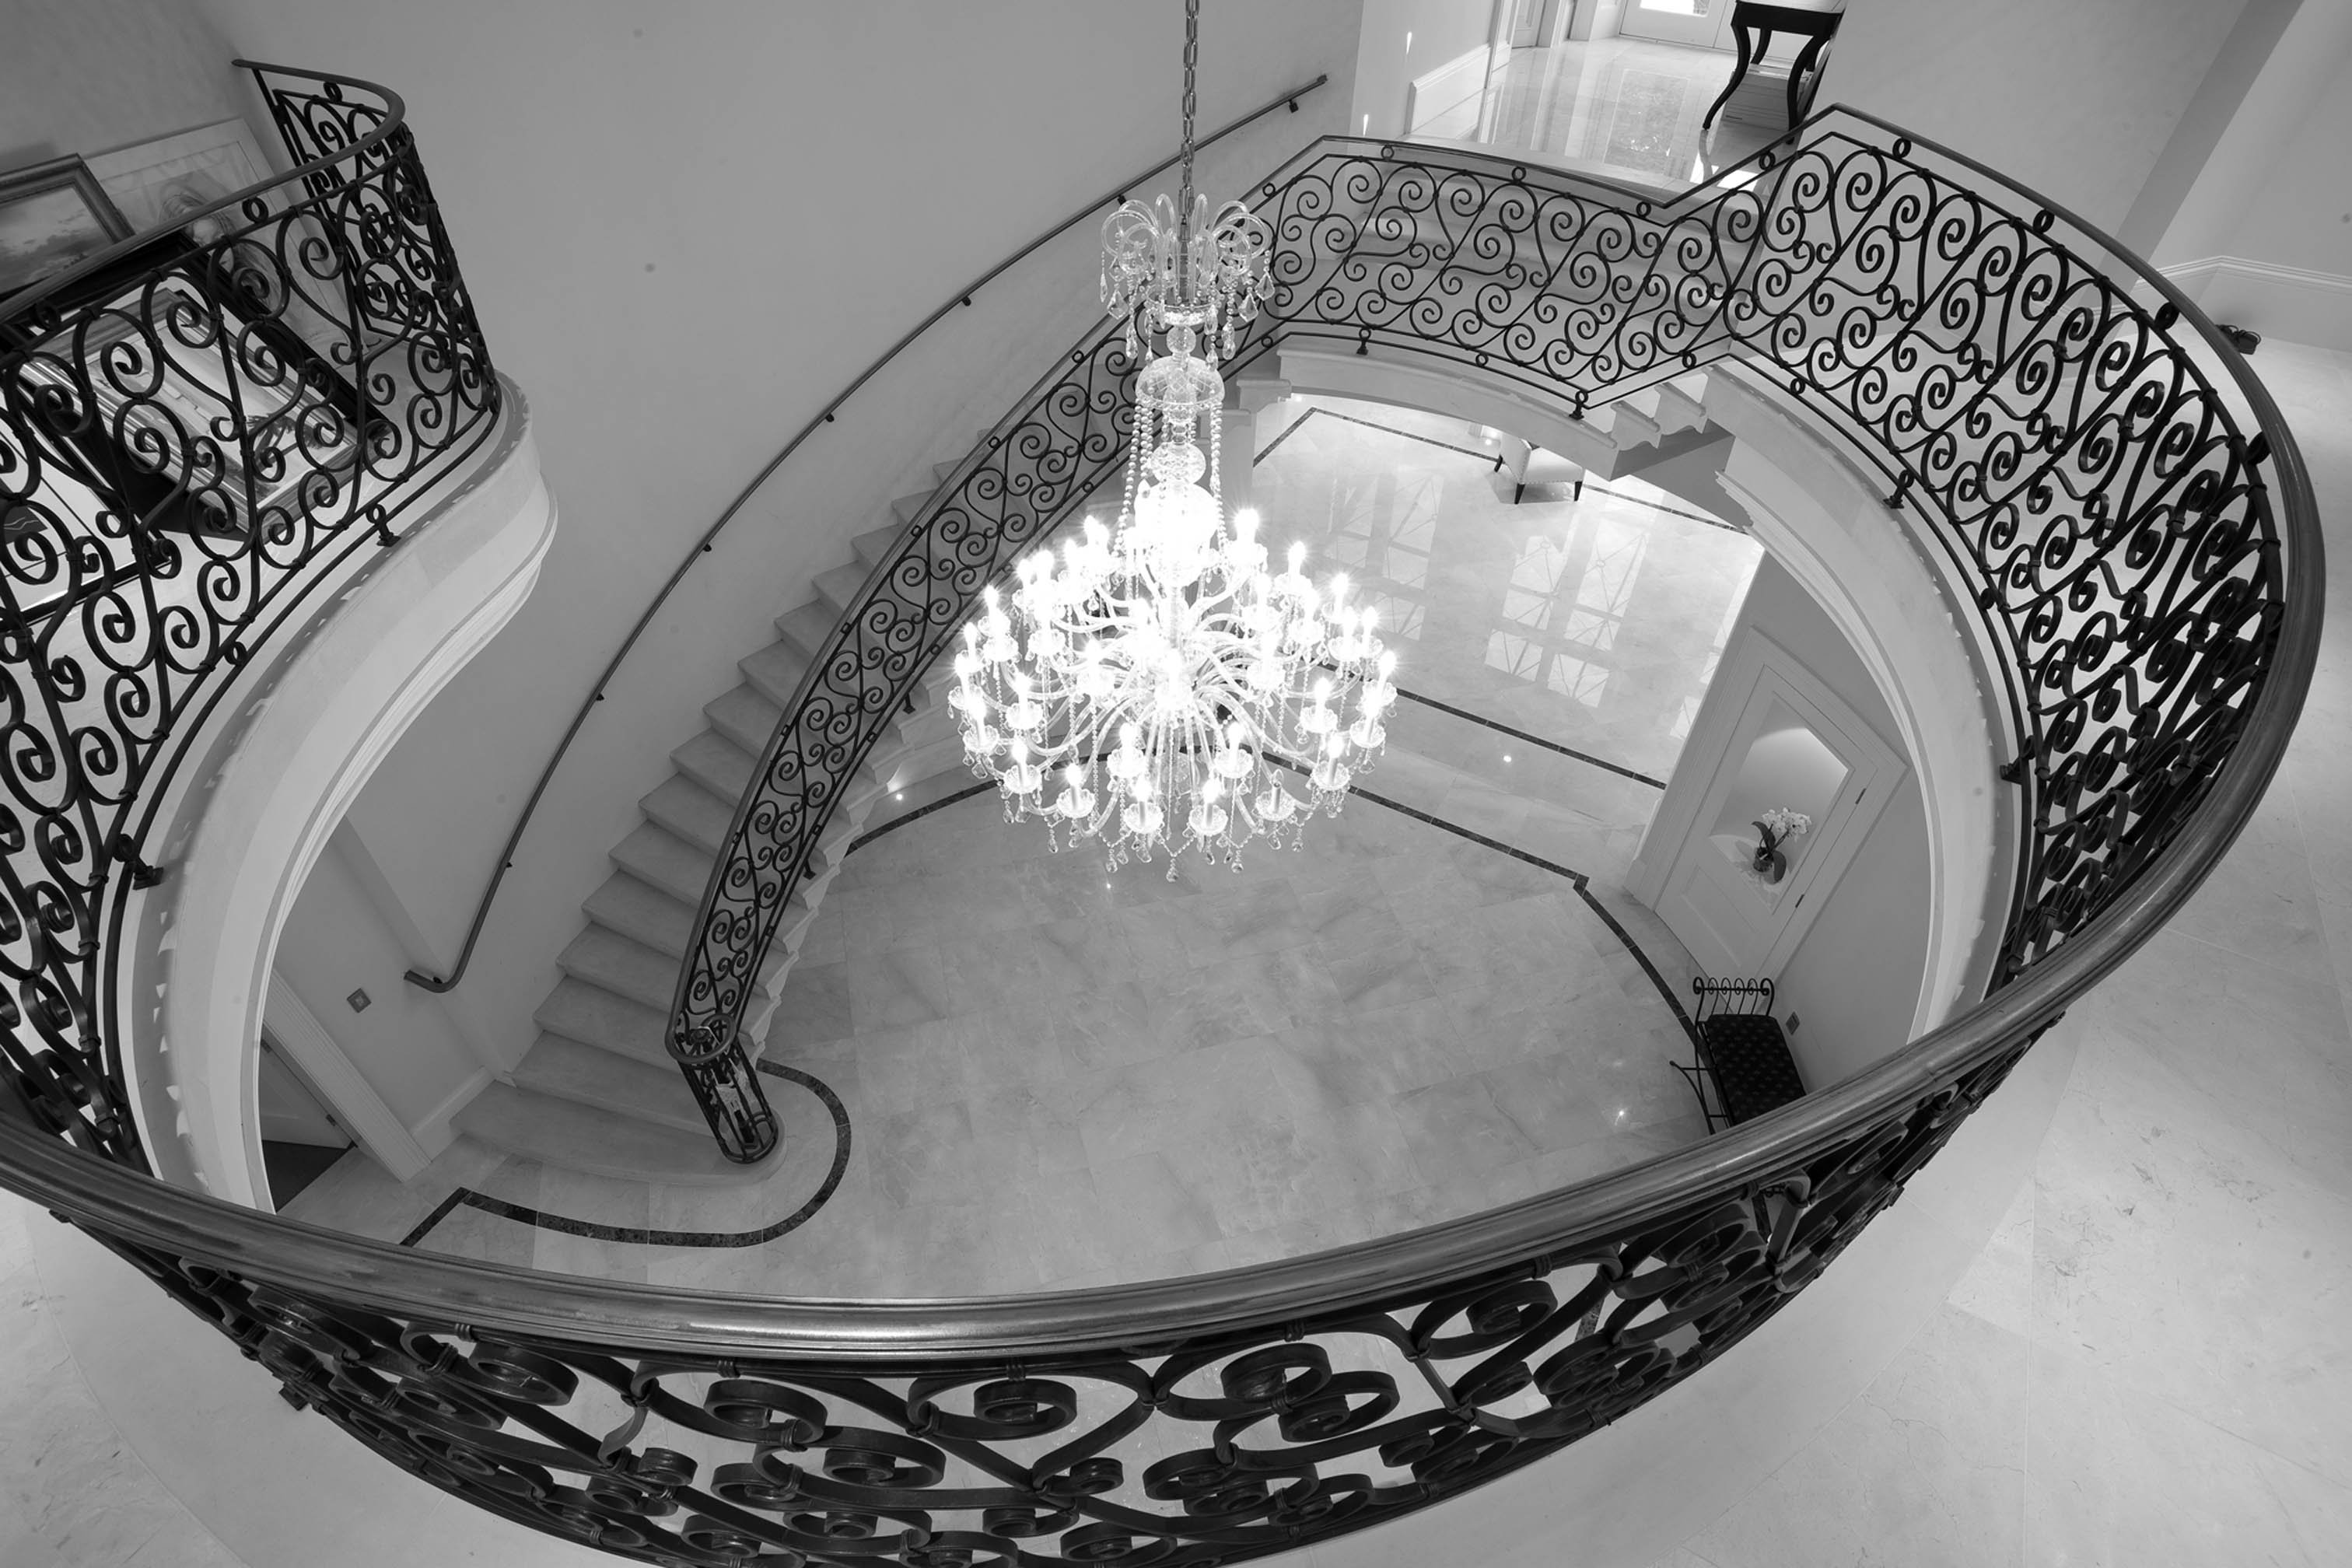 15. Cantilever stone staircase with solid stone in-flight gallery – Belfast